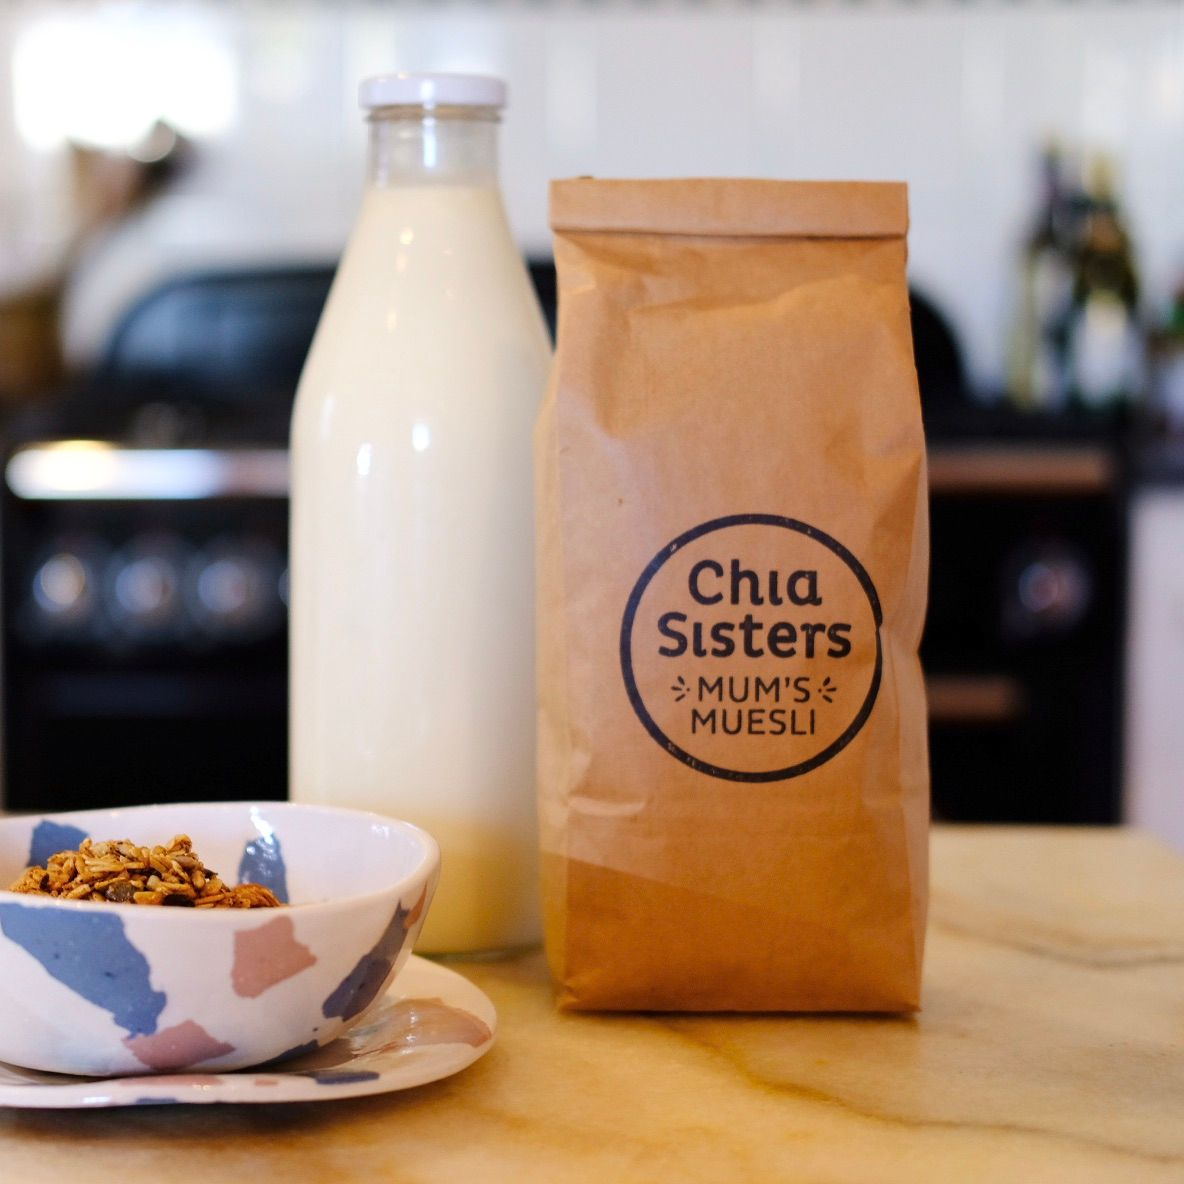 Chia Sisters: Award-Winning Beverages and Their Commitment to Sustainability